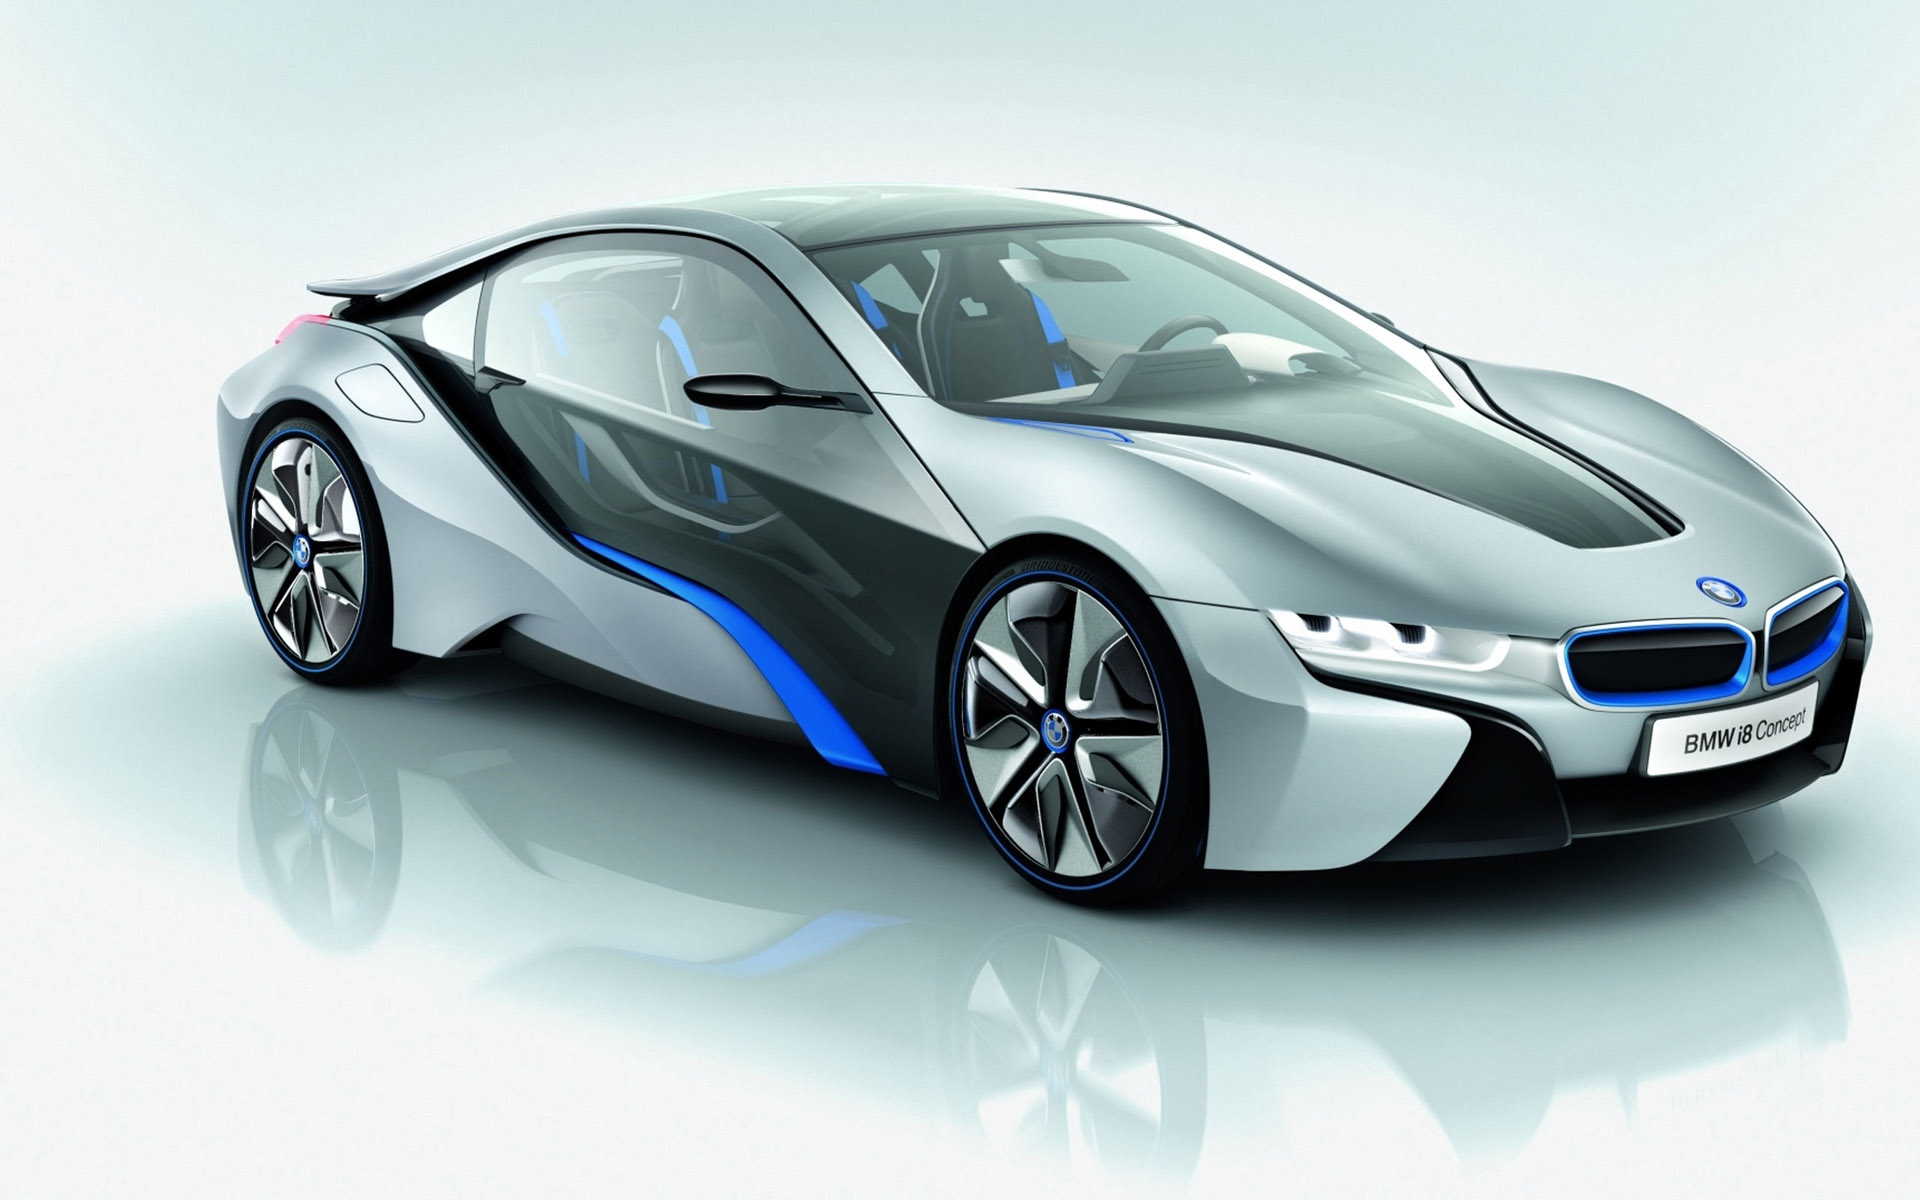 White Bmw I8 Hd Wallpaper Hd Latest Wallpapers